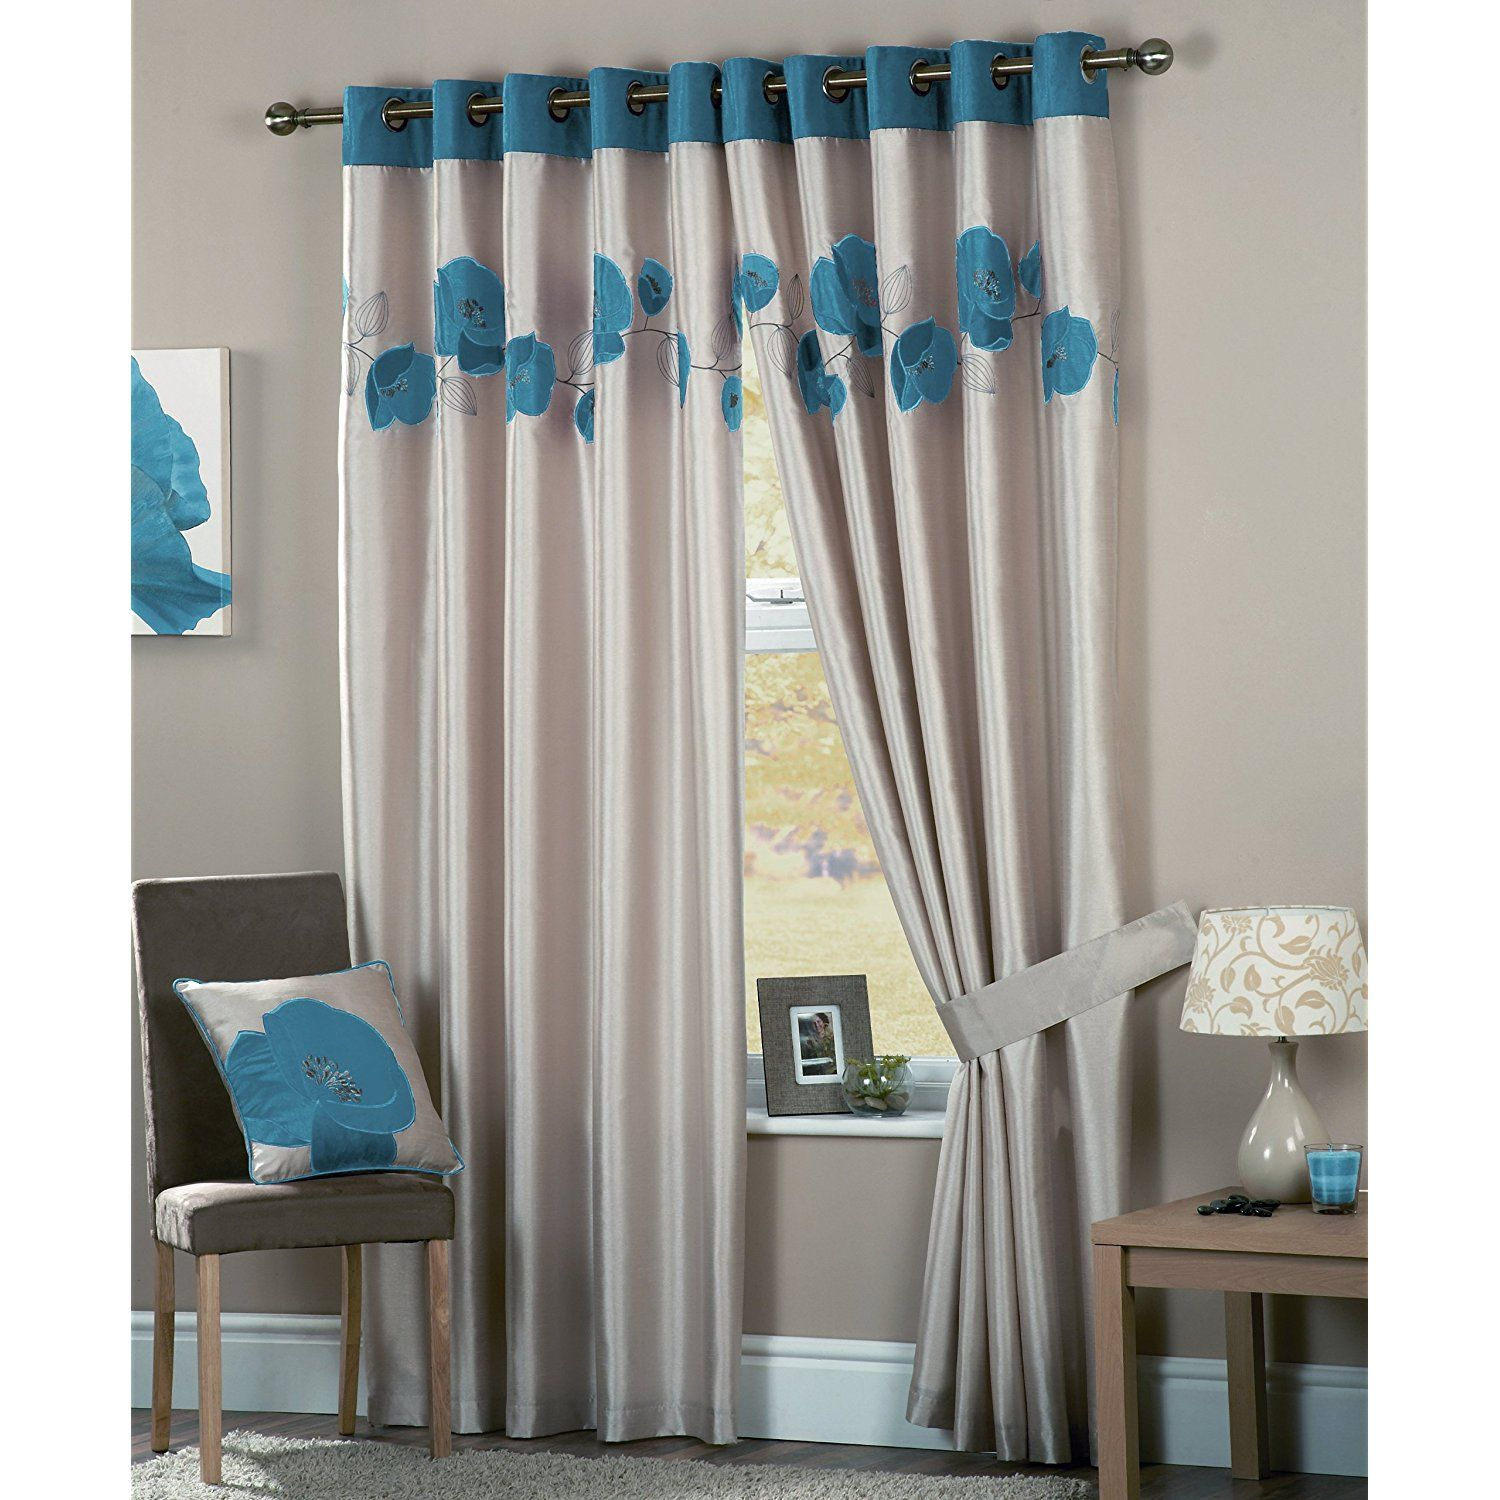 Explore Lined Curtains Poppy And More